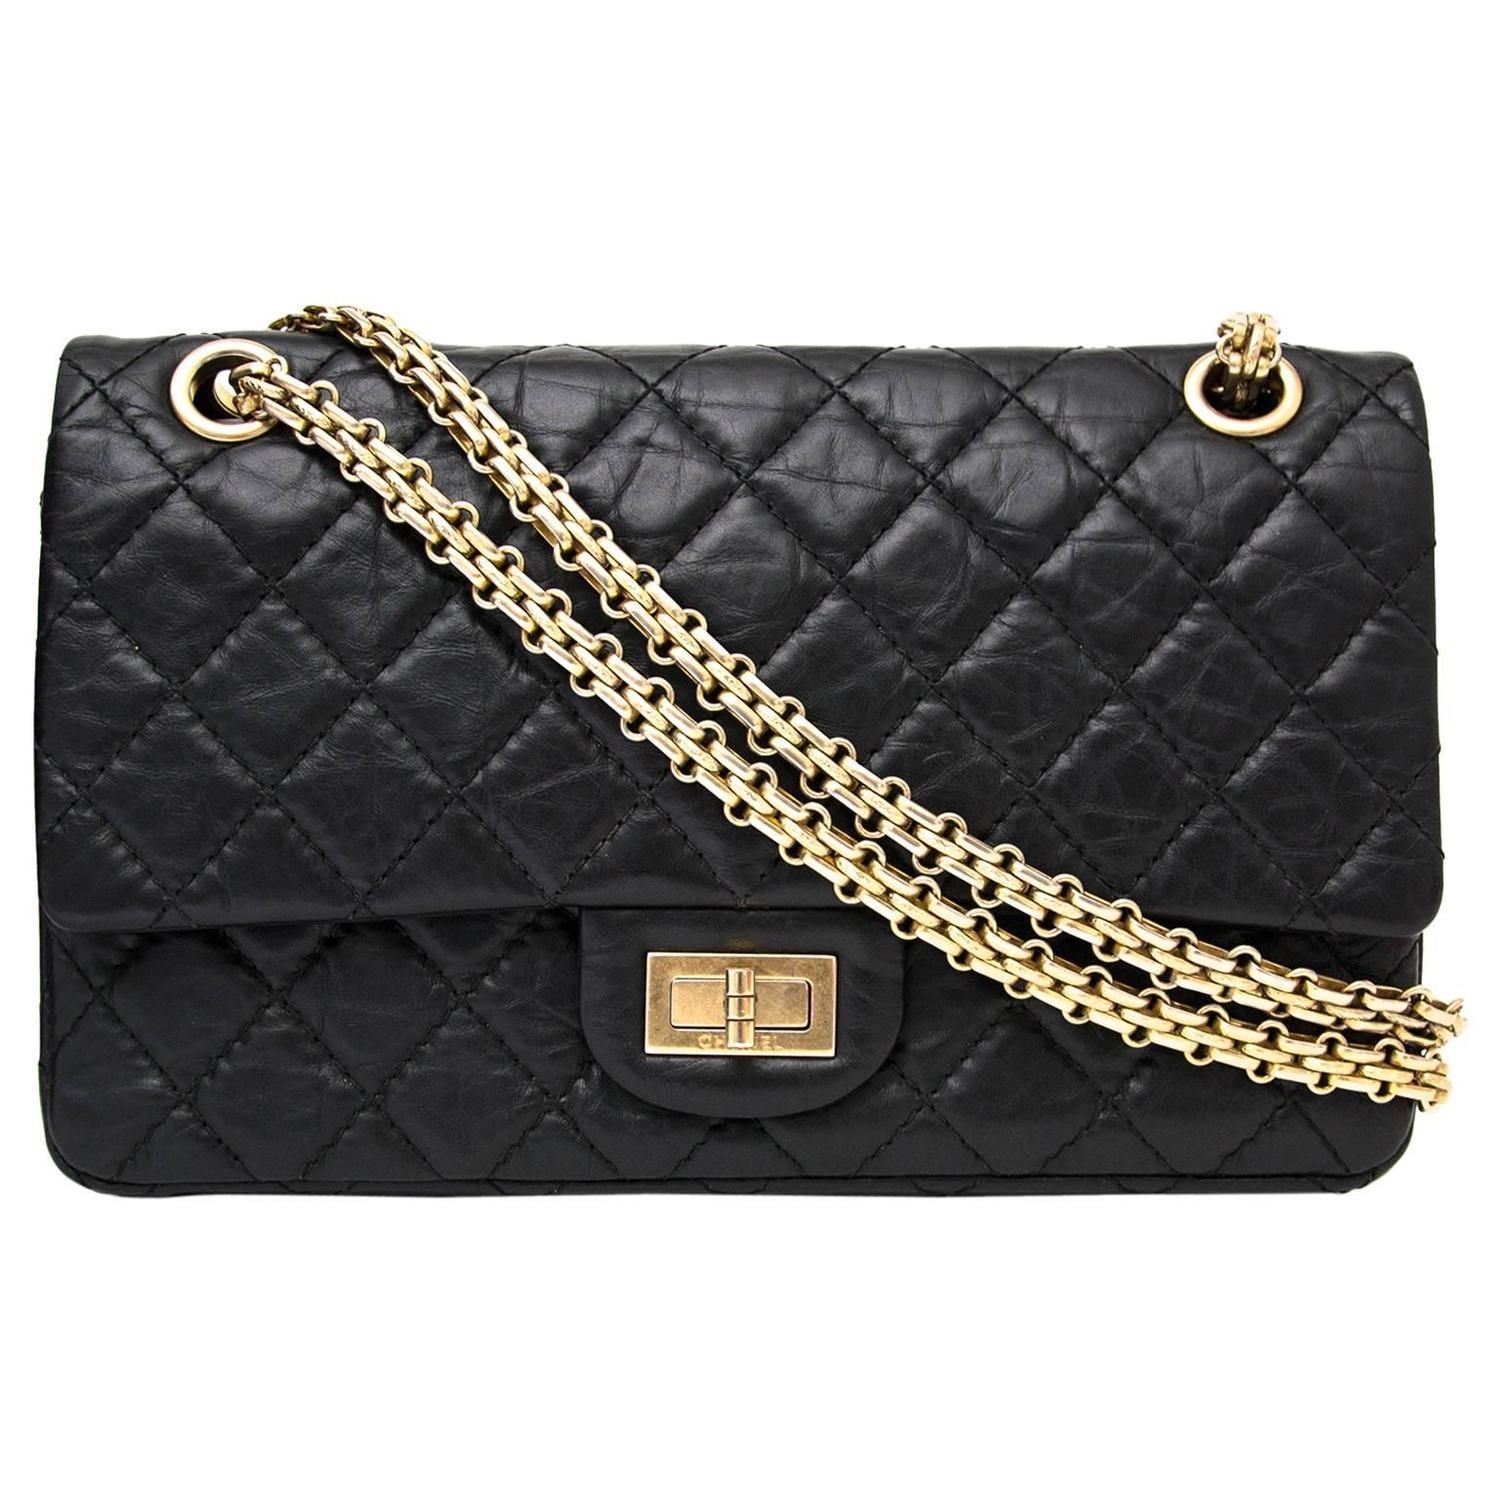 9d6bc2039 Chanel 2.55 Reissue 225 Double Flap Bag in Black | Current Closet ...